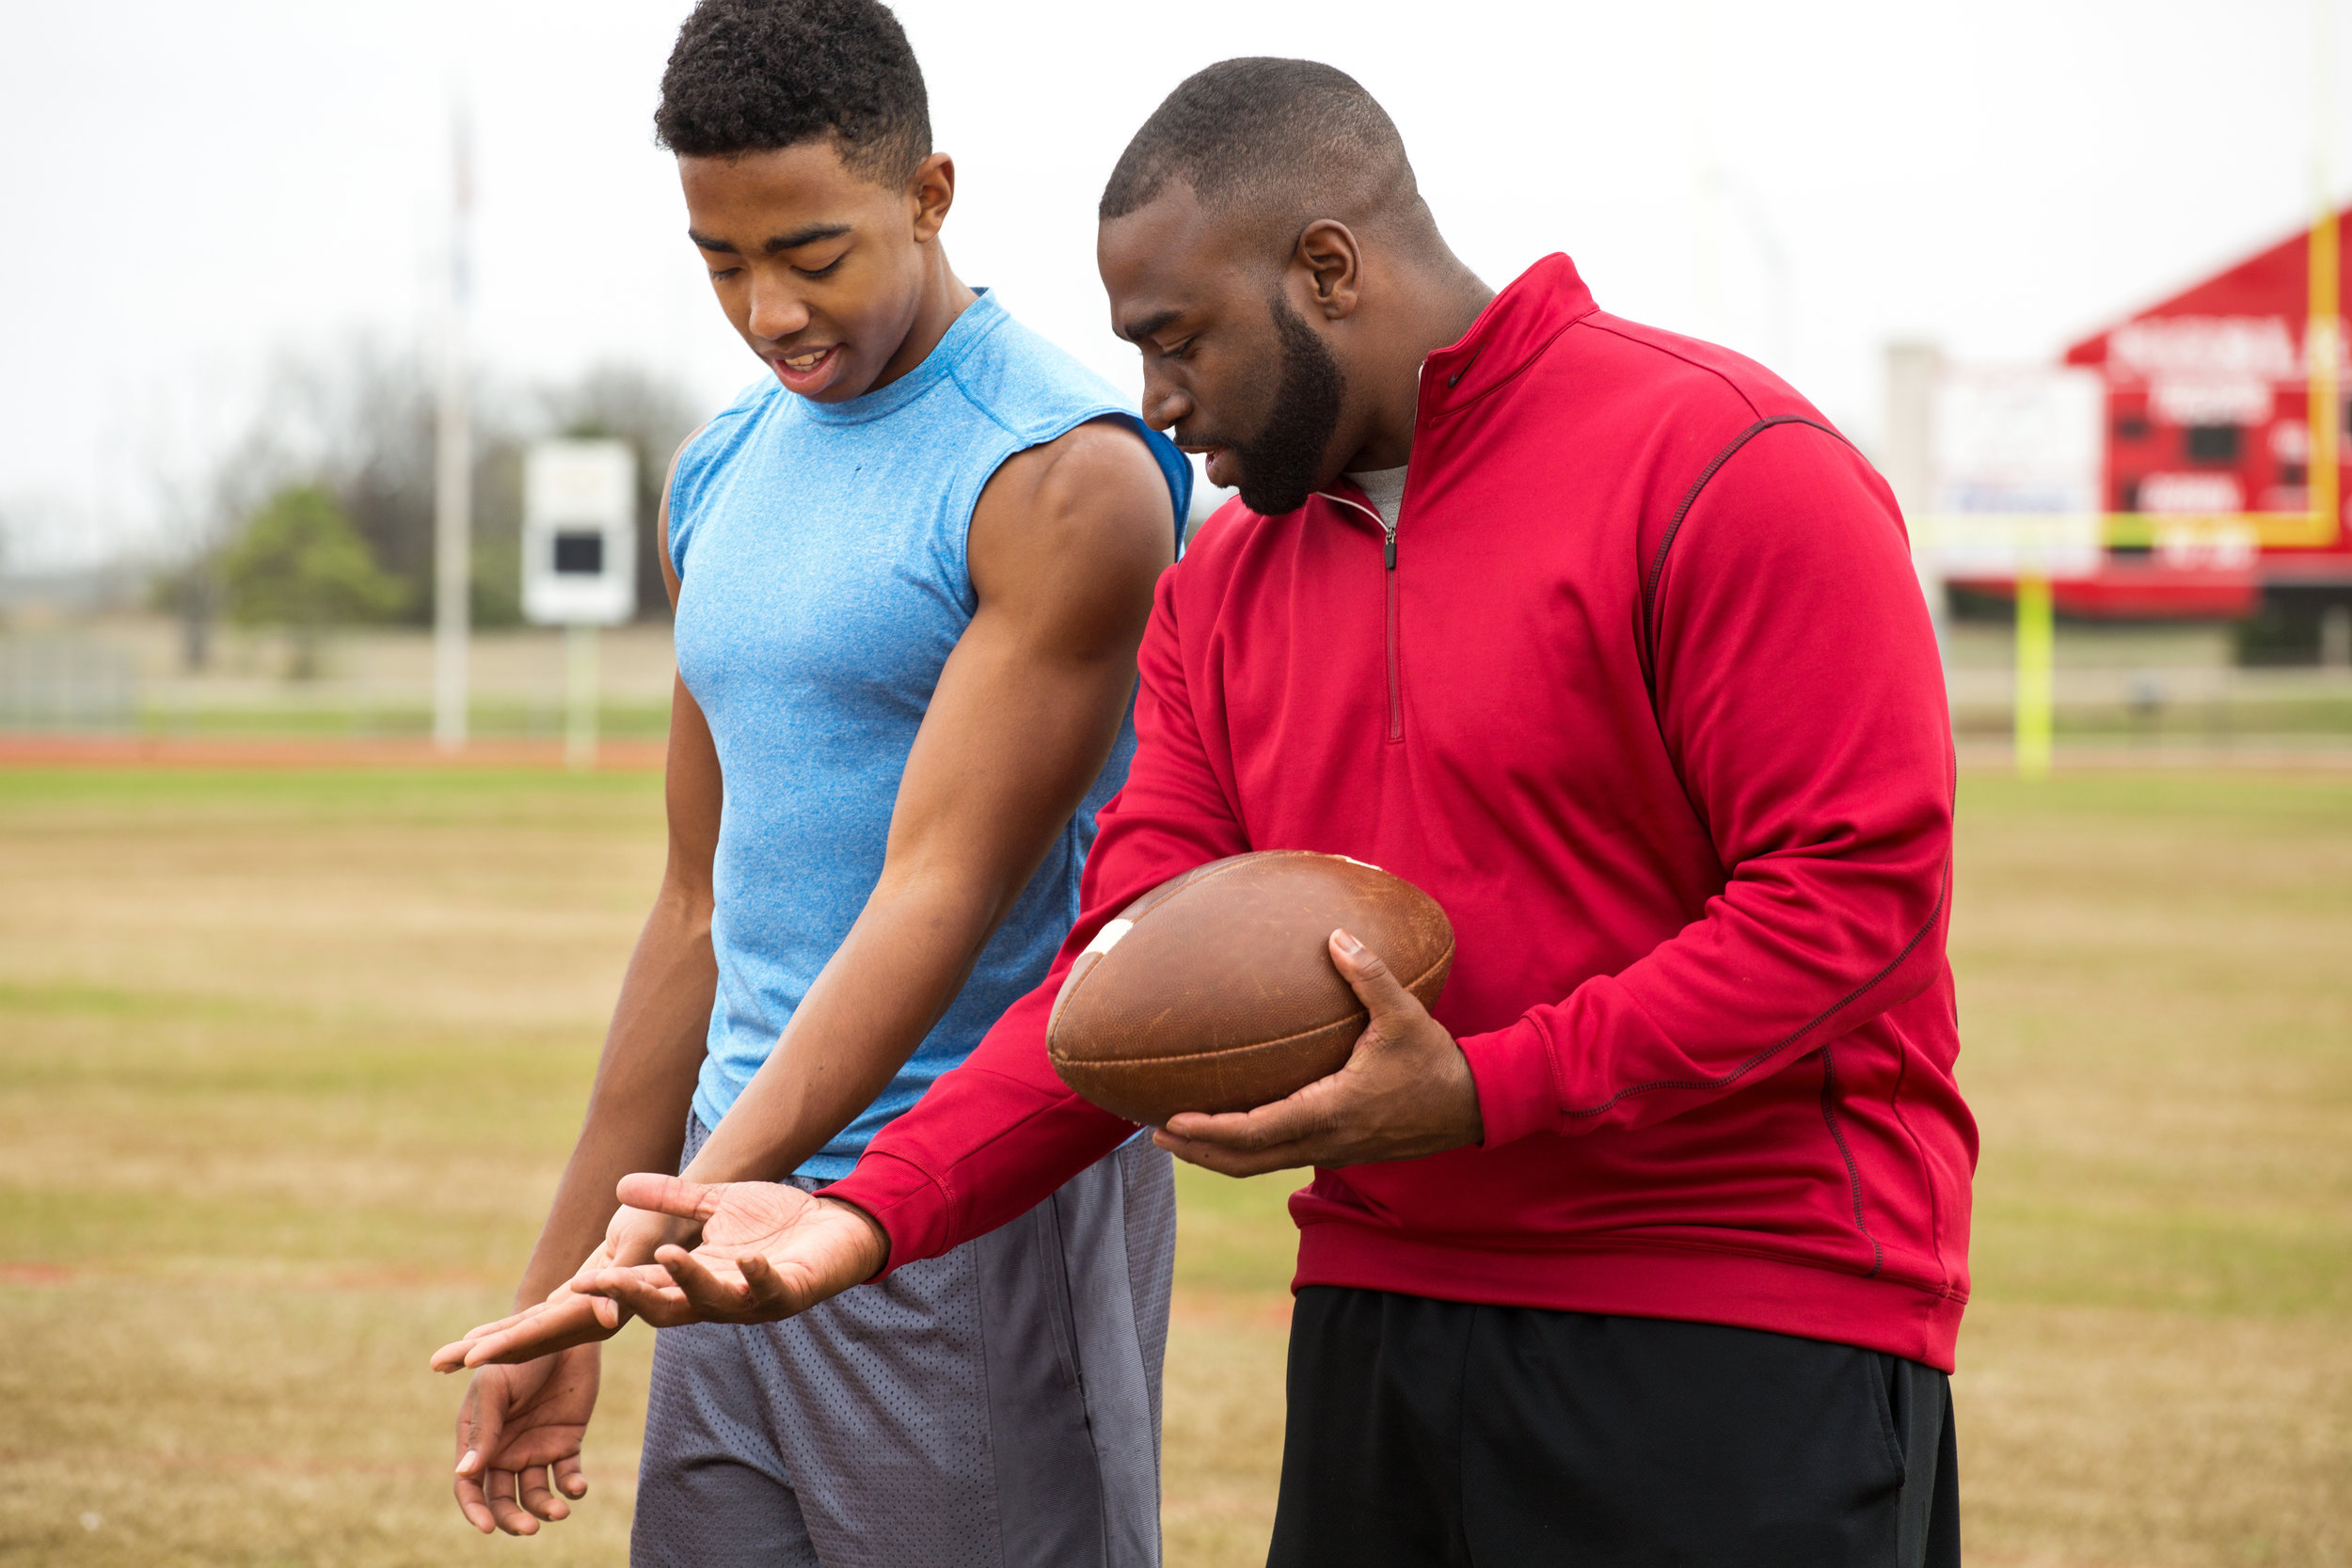 With your support, we can bring coaches trained in sports-based youth development to kids in Northern California. -